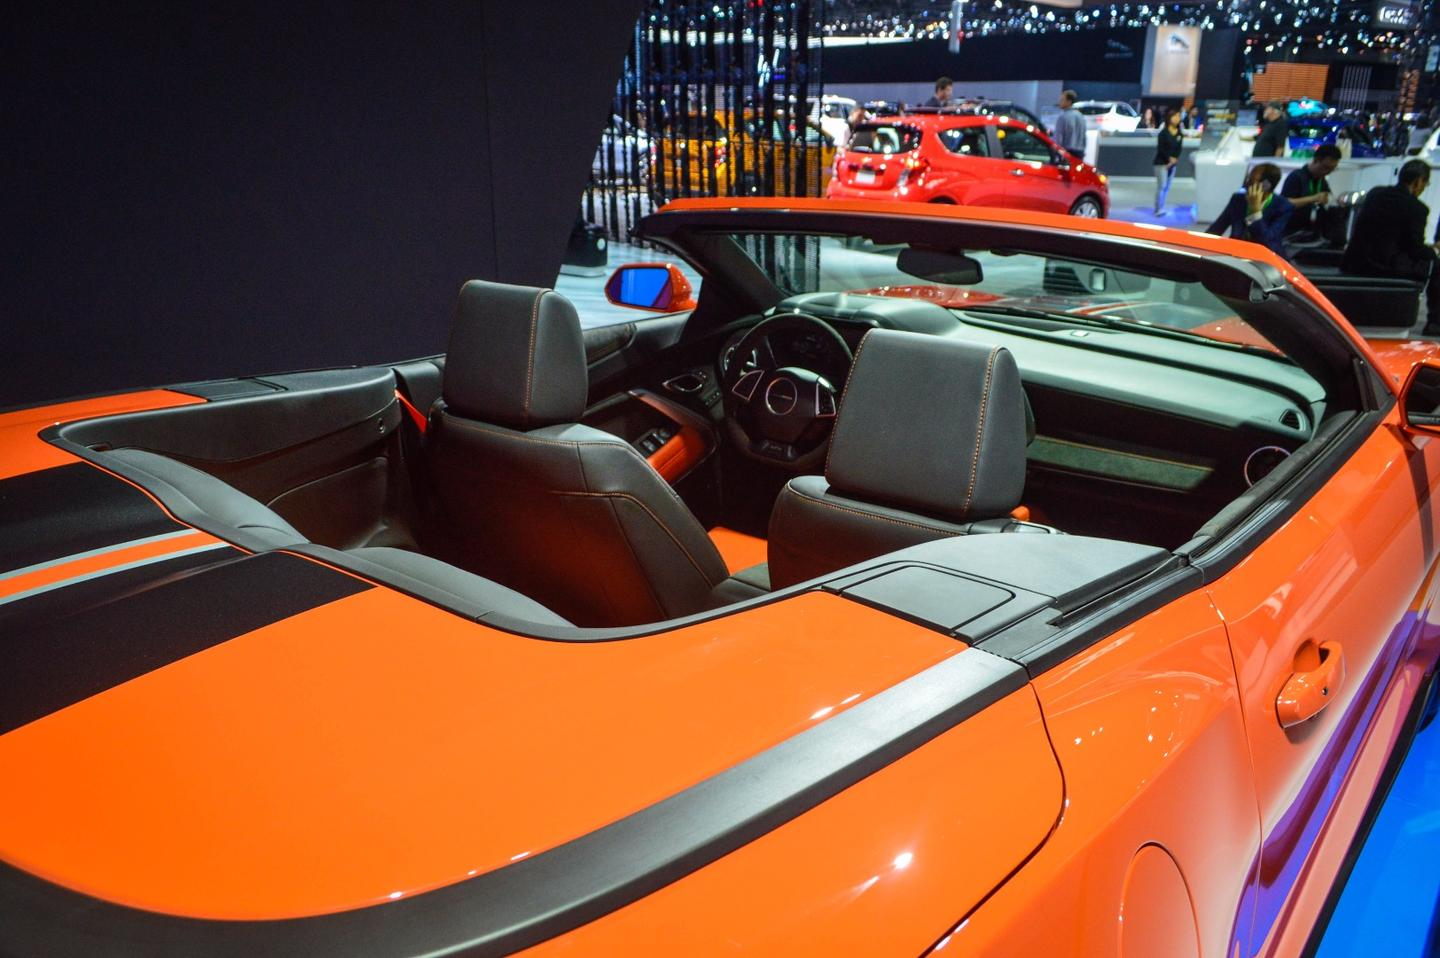 The 2019 Corvette ZR1 convertible is the first ZR1 drop-top Chevrolet has made since the original in 1970